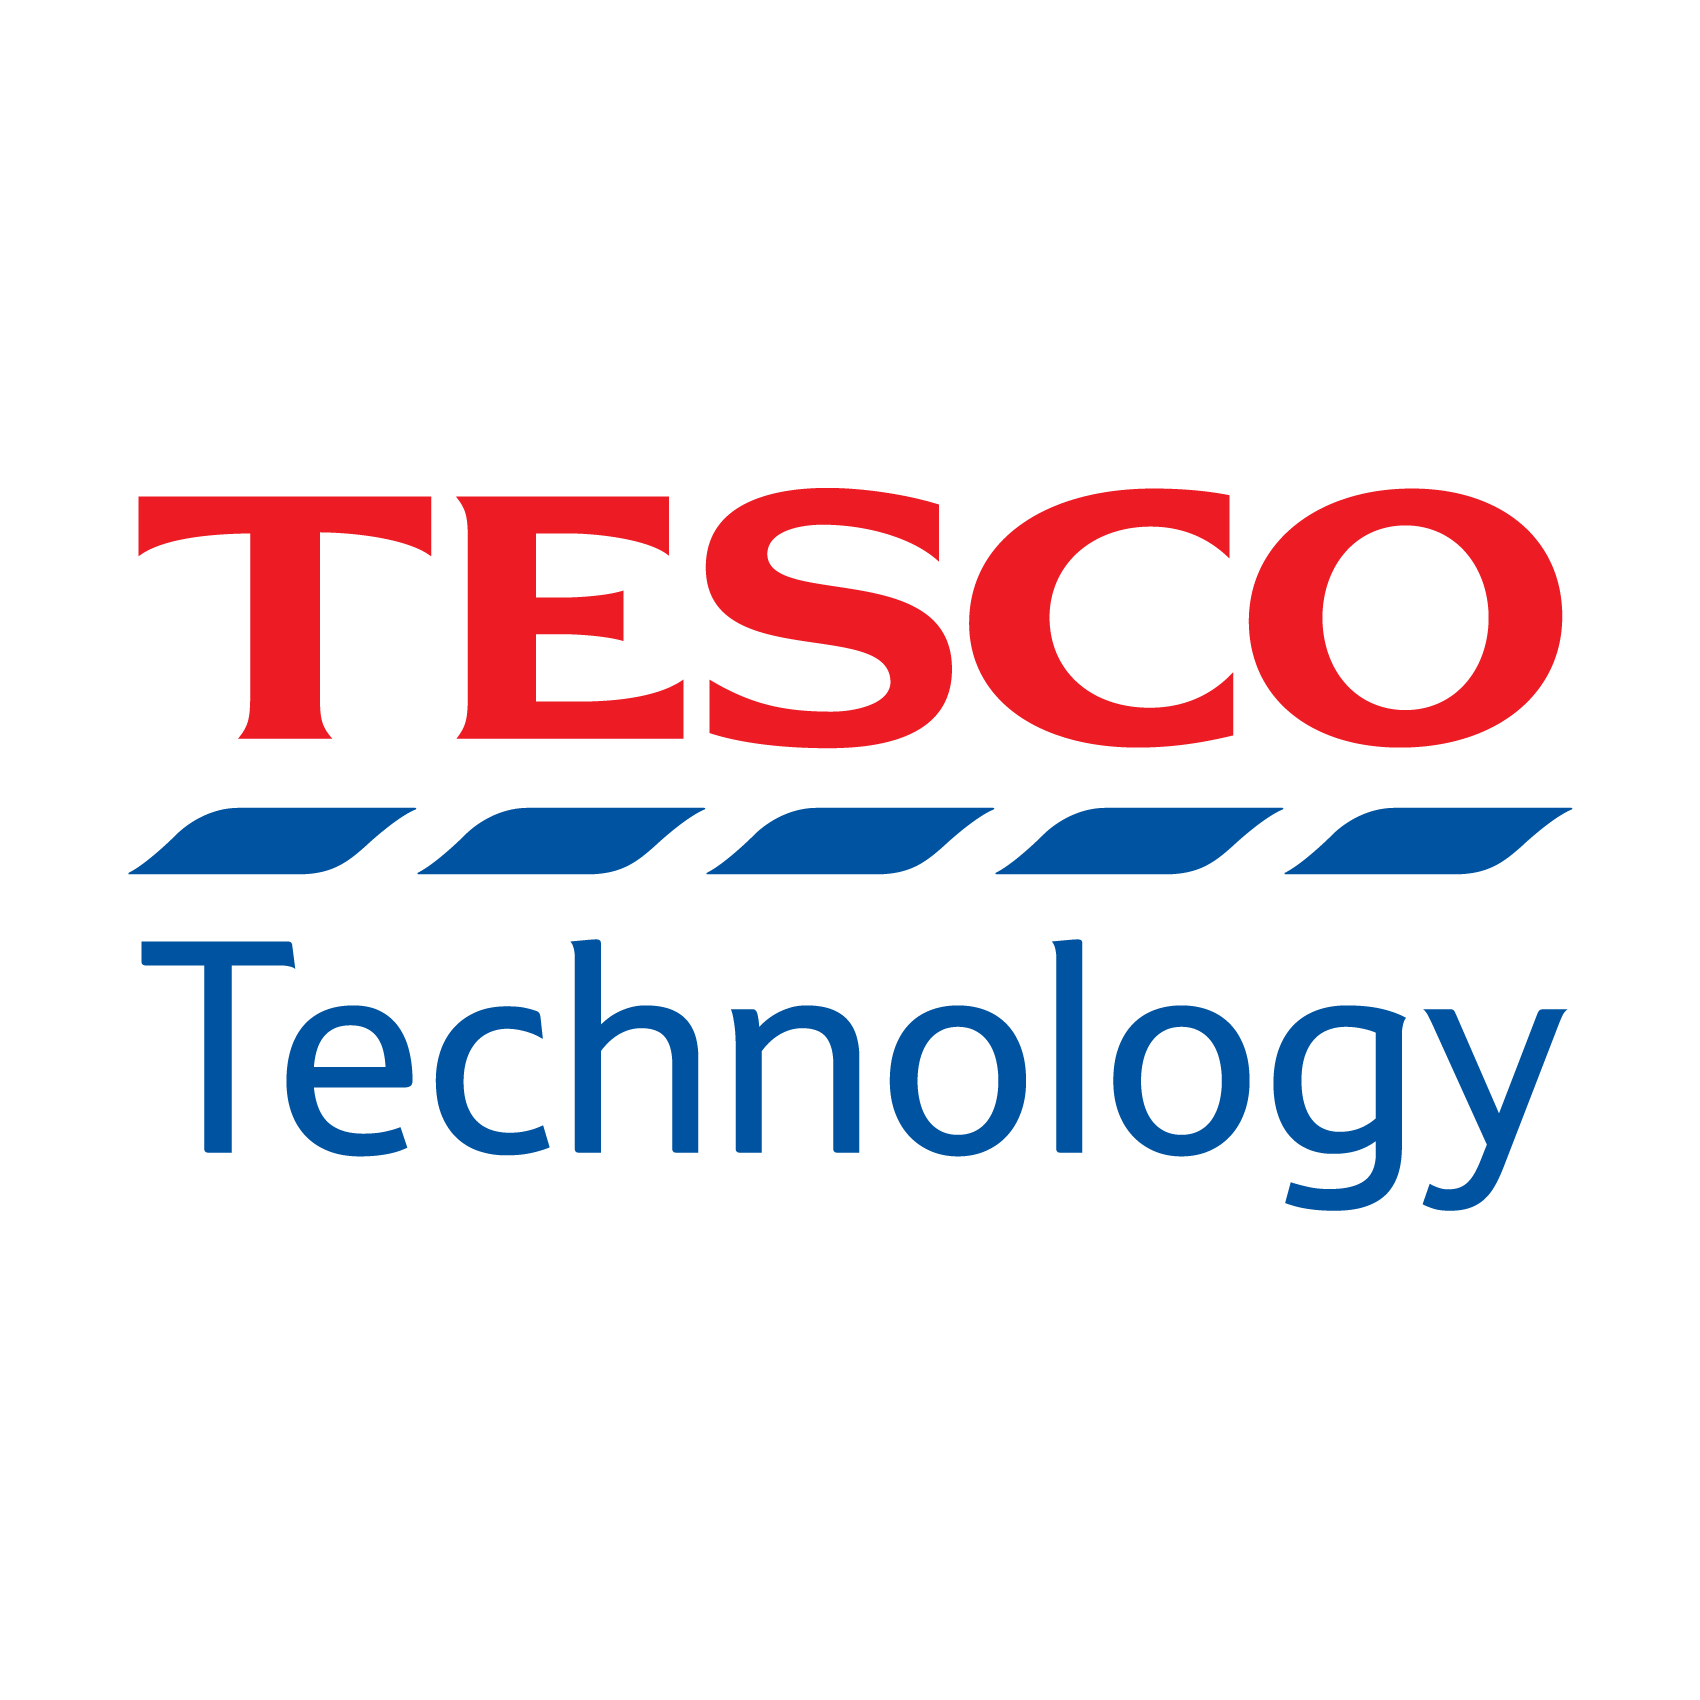 Download Logo Tesco Plc Bank Text Free Clipart HQ HQ PNG.